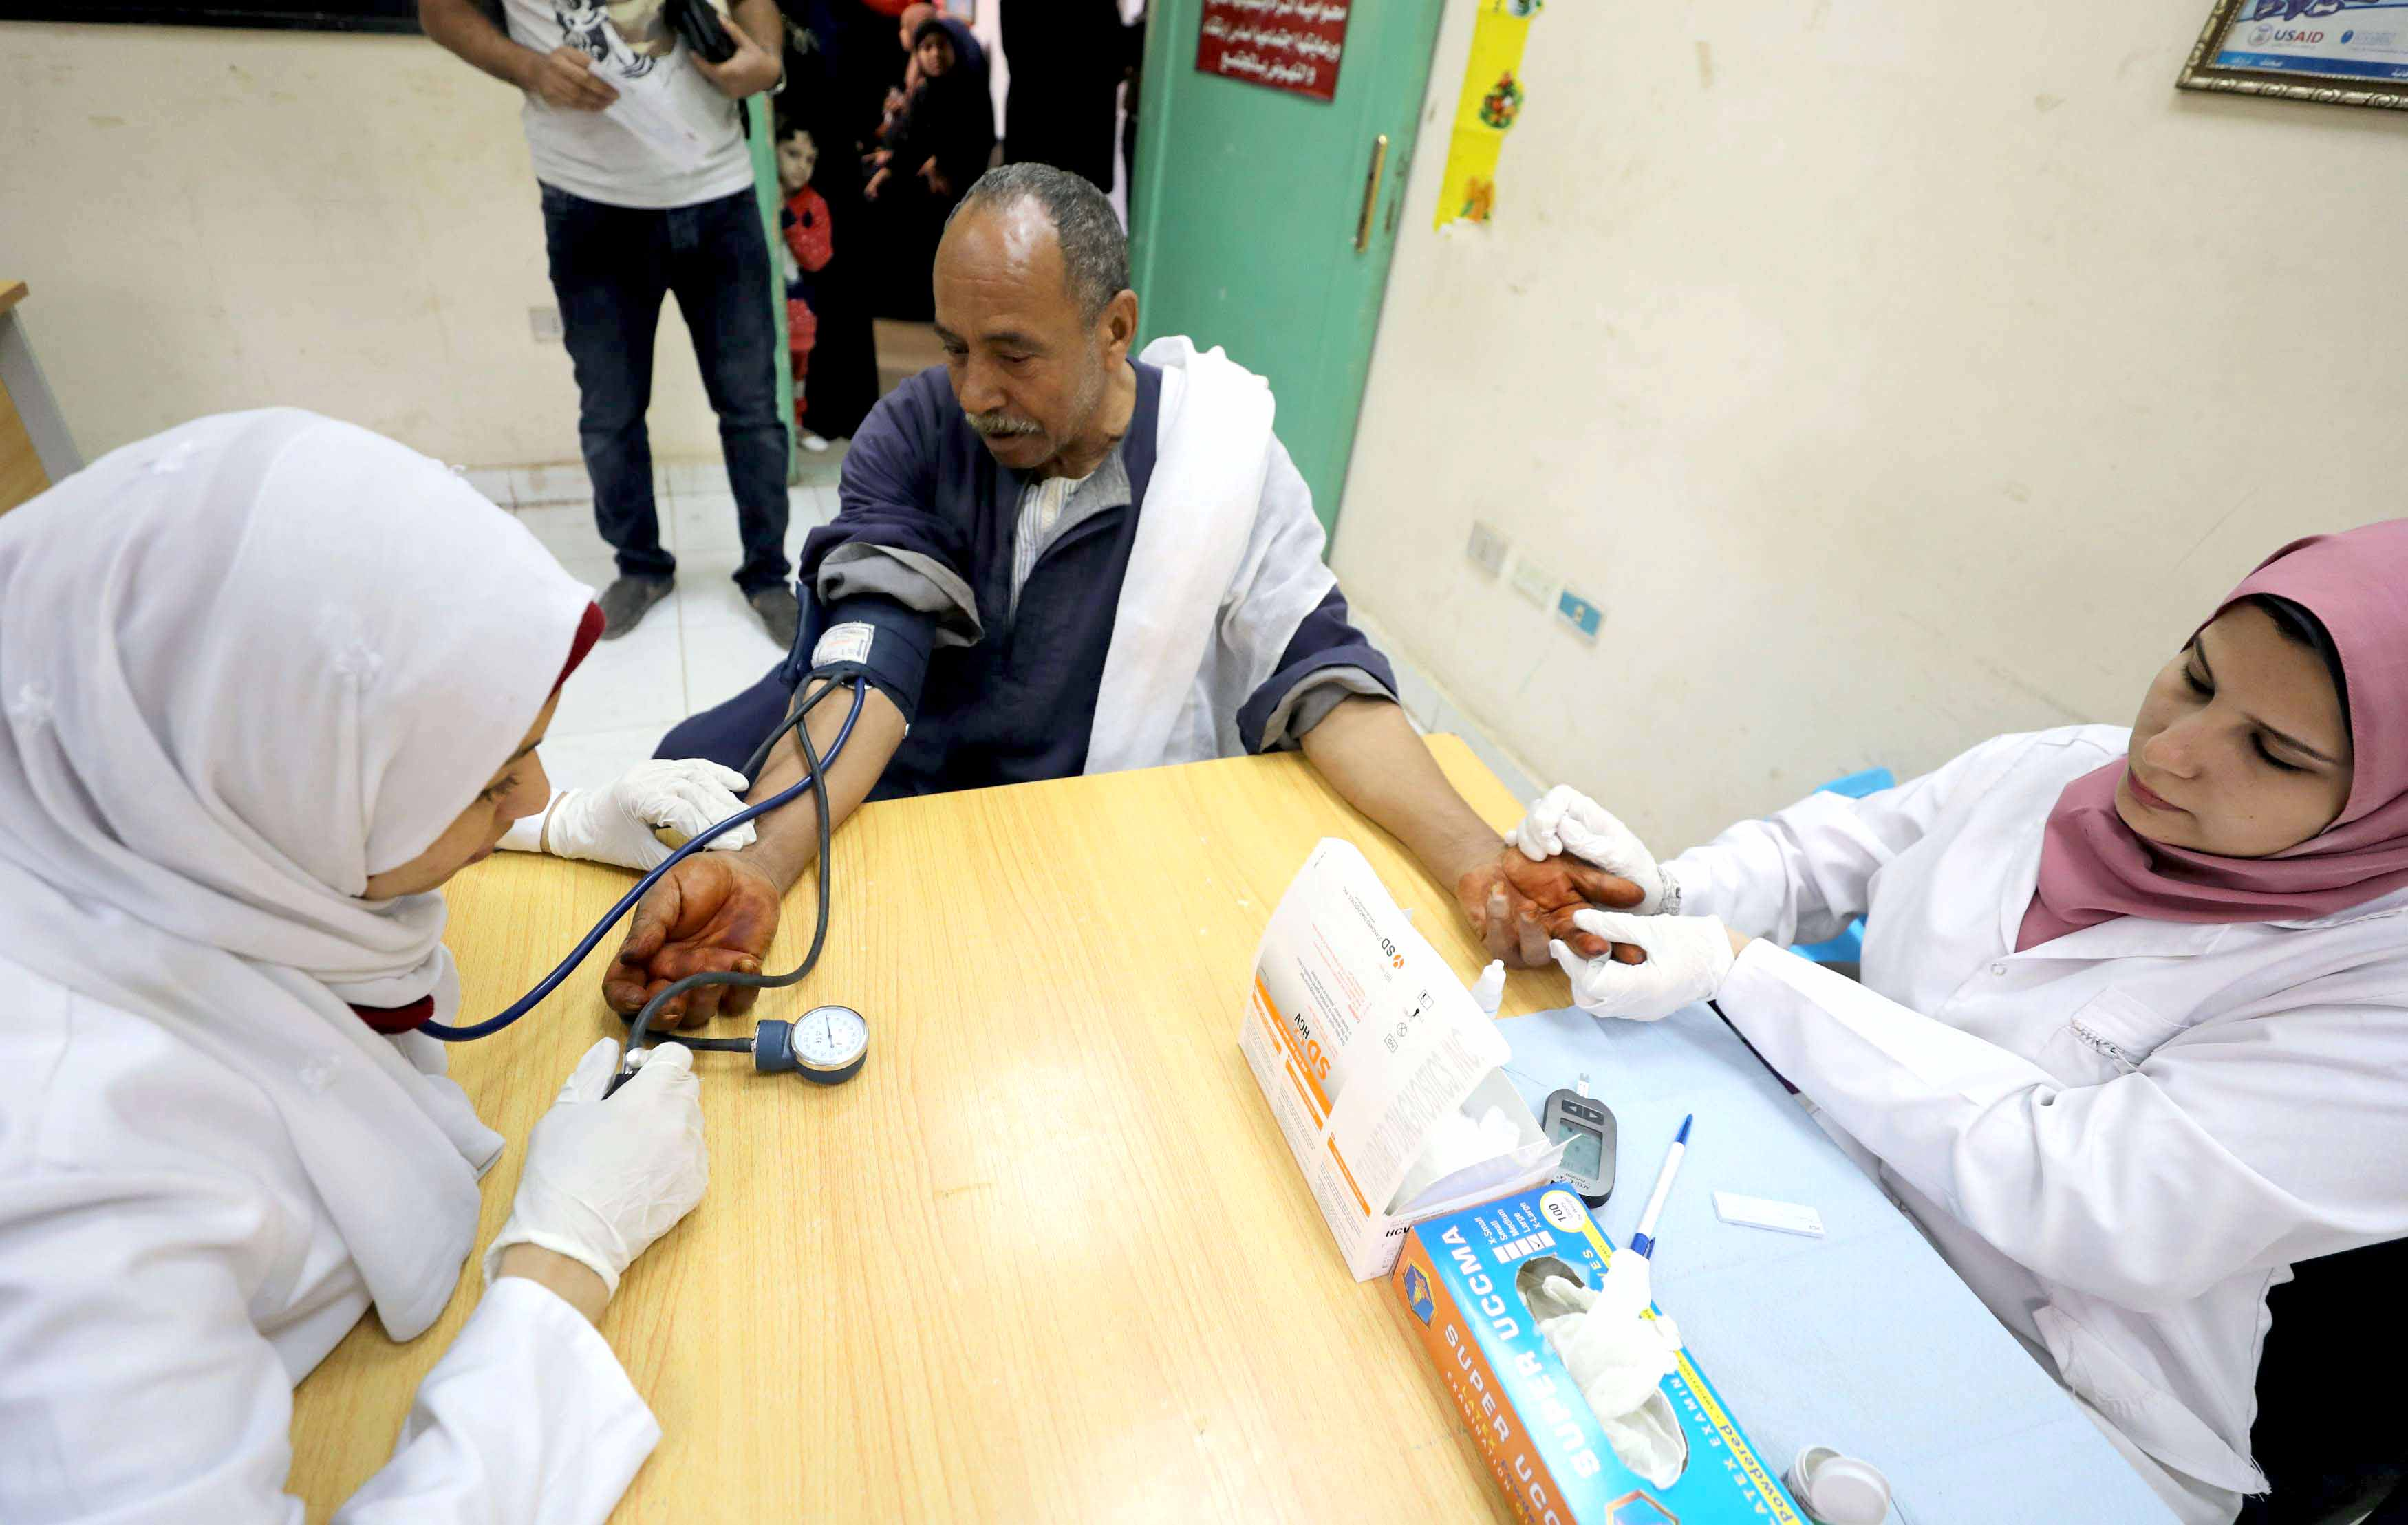 Egyptian doctors make a test during a campaign that aims to test 50 million people to detect and treat hepatitis C patients in Cairo. (Reuters)